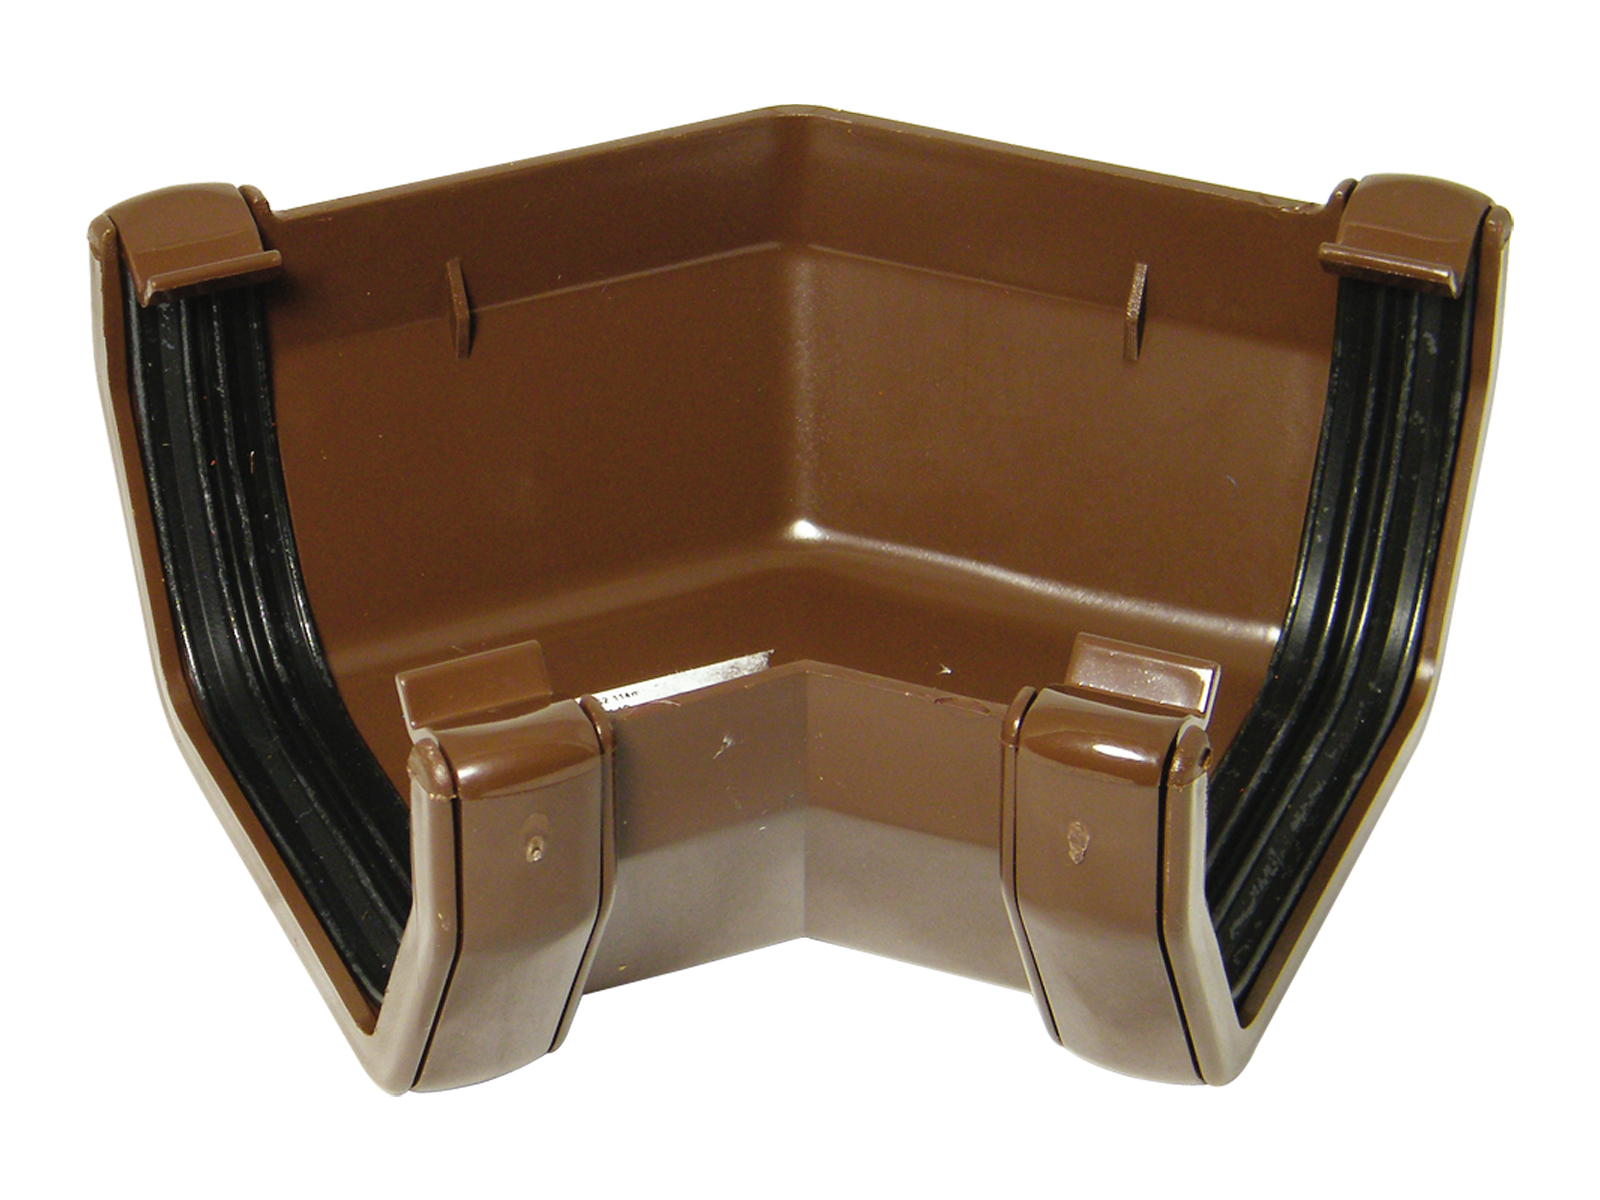 FLOPLAST SQUARE LINE GUTTER - RAS2 135* ANGLE - BROWN